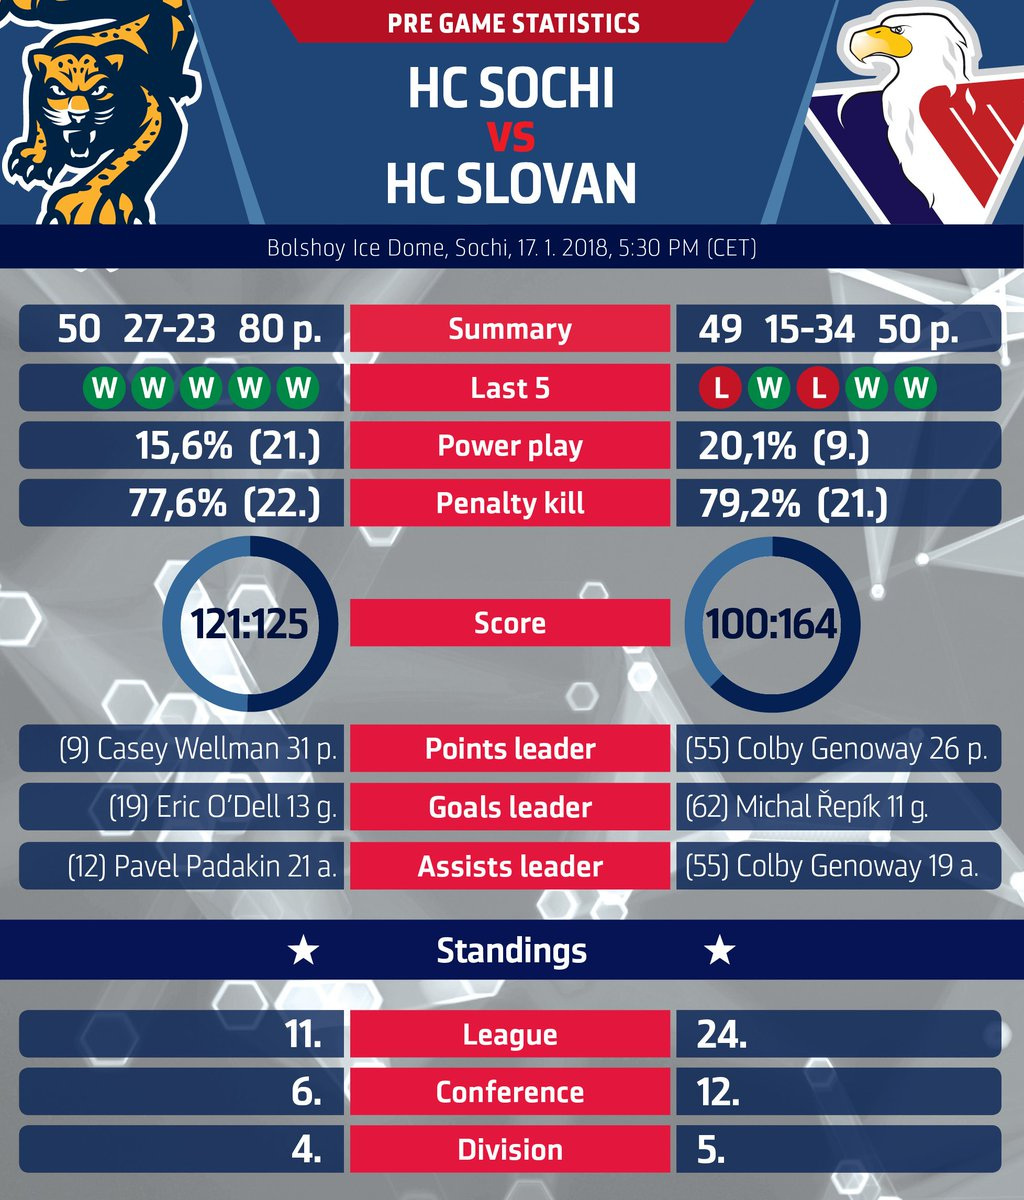 #pregame #stats and match up info @HCSOCHI vs #hcslovan. @khl #VerniSlovanu https://t.co/utwsj0tuIN